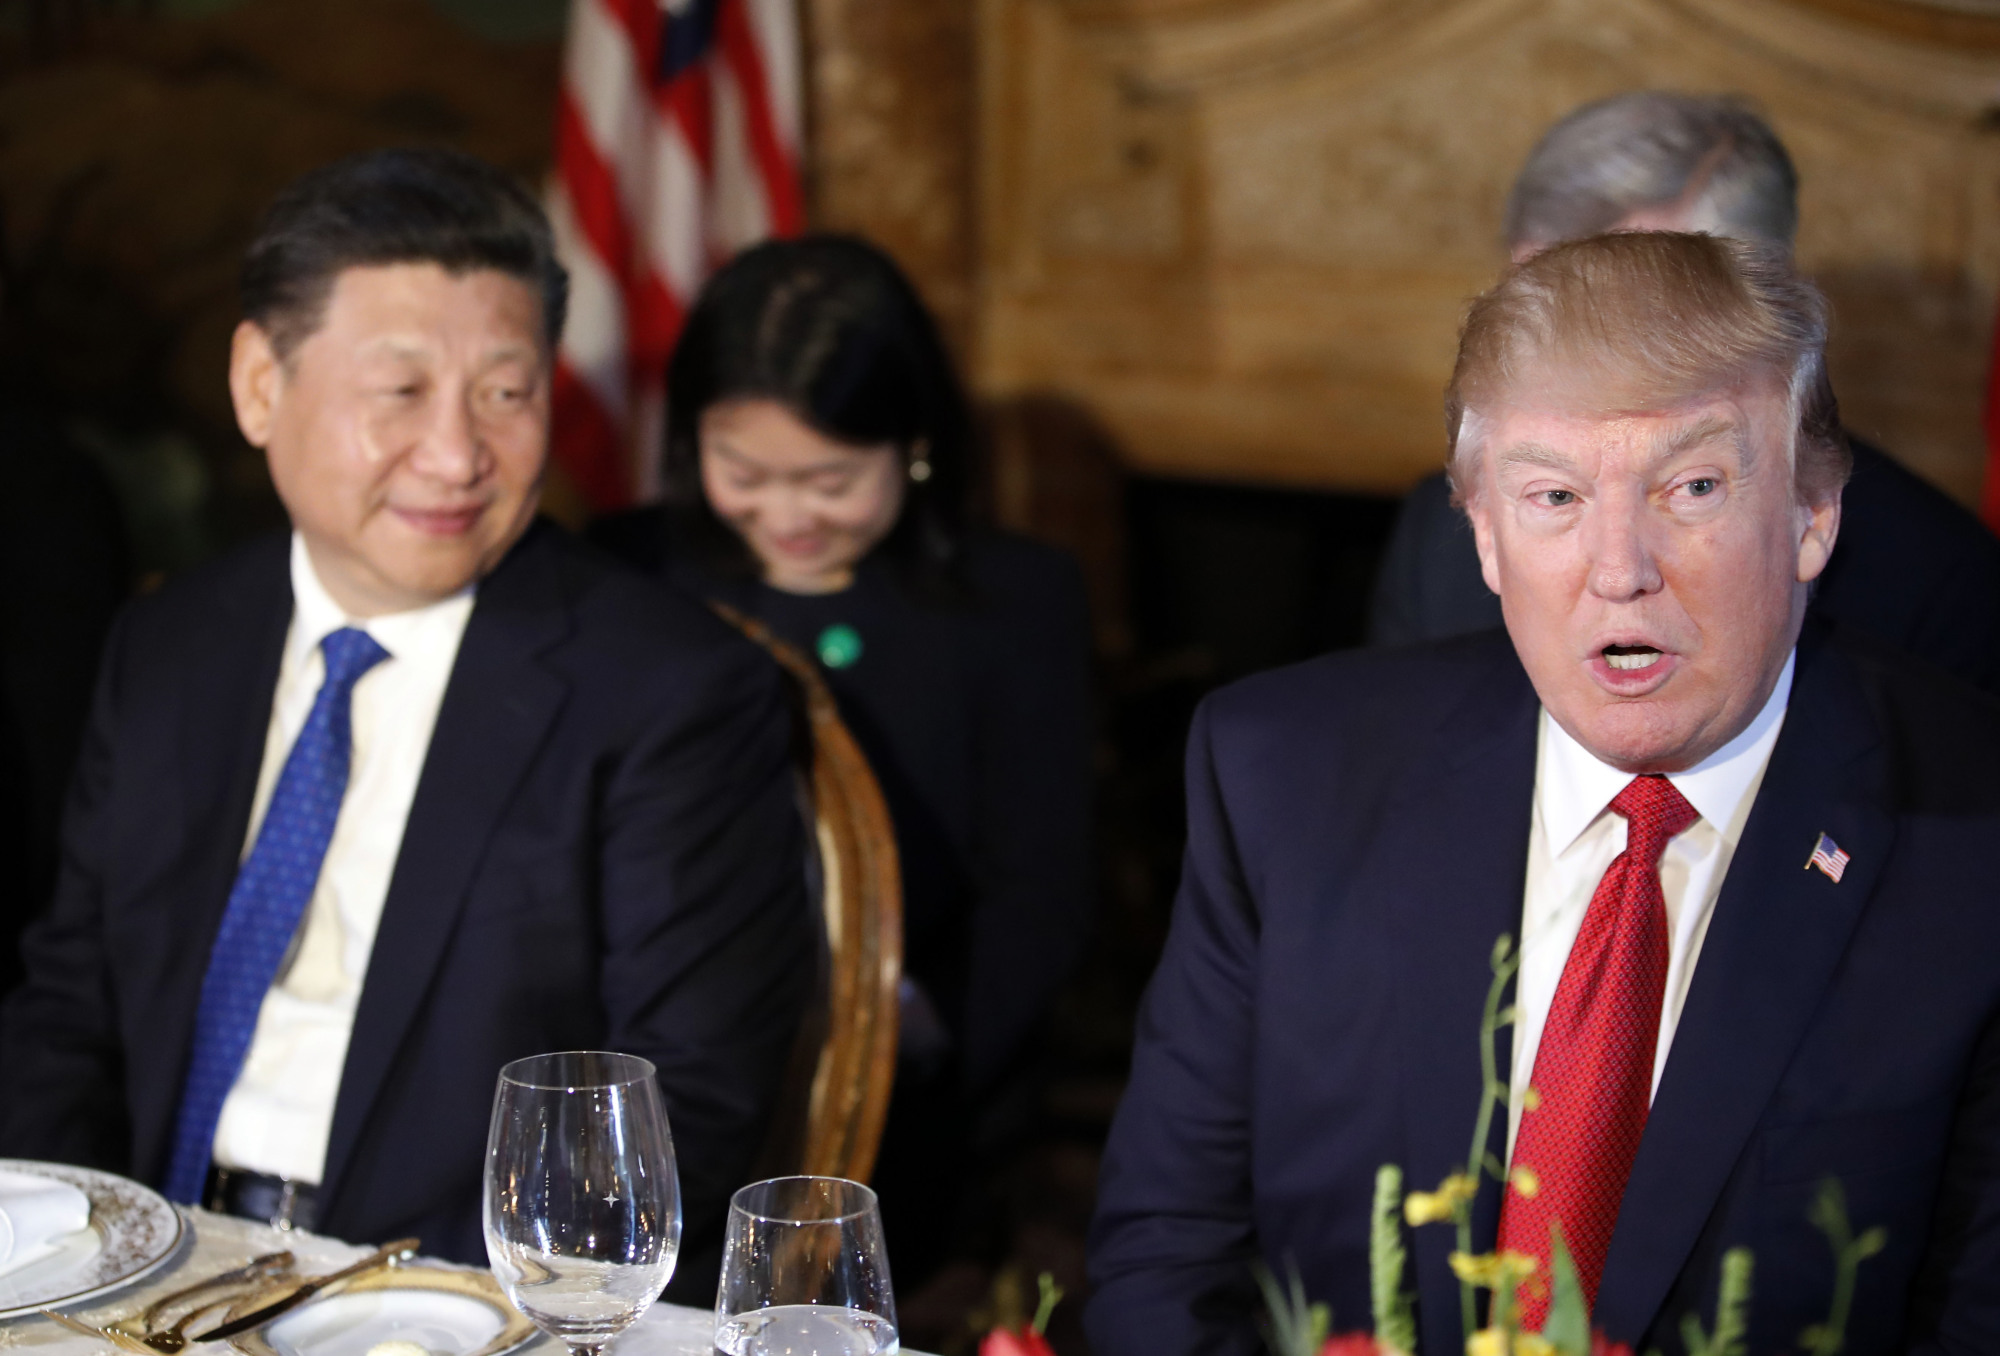 U.S. President Donald Trump and Chinese President Xi Jinping attend a dinner at Mar-a-Lago  on Thursday in Palm Beach, Florida. | AP